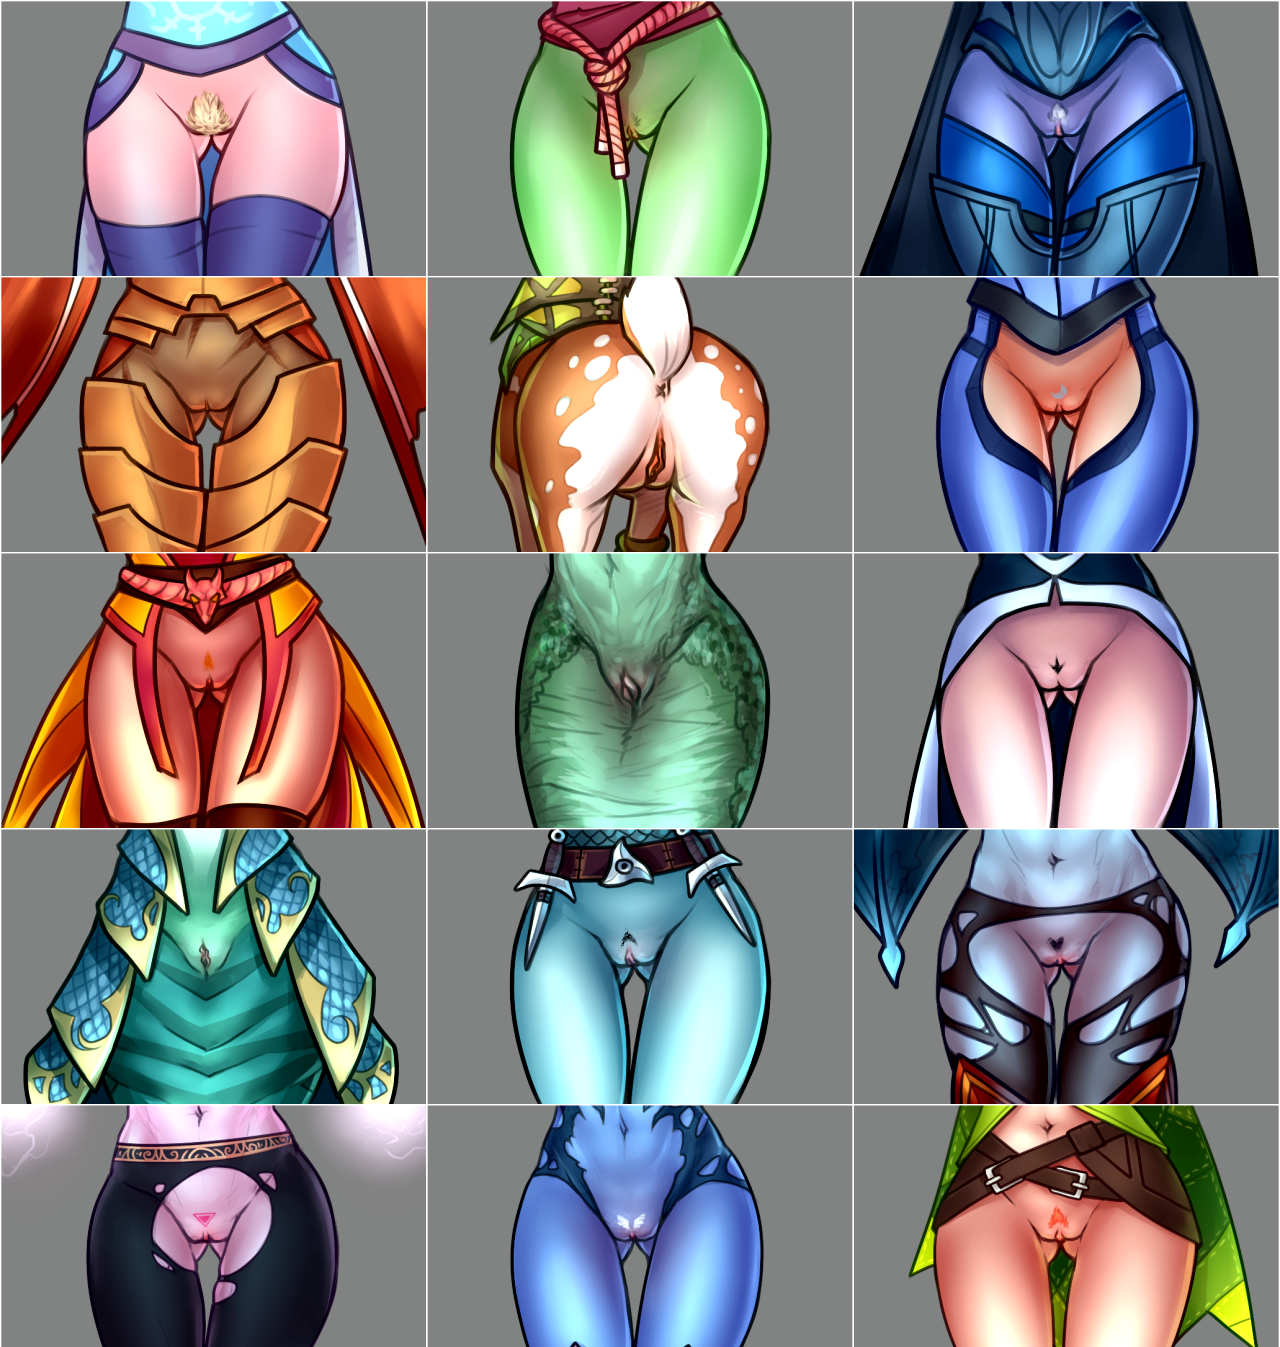 Dota 2 female nude cartoon tube